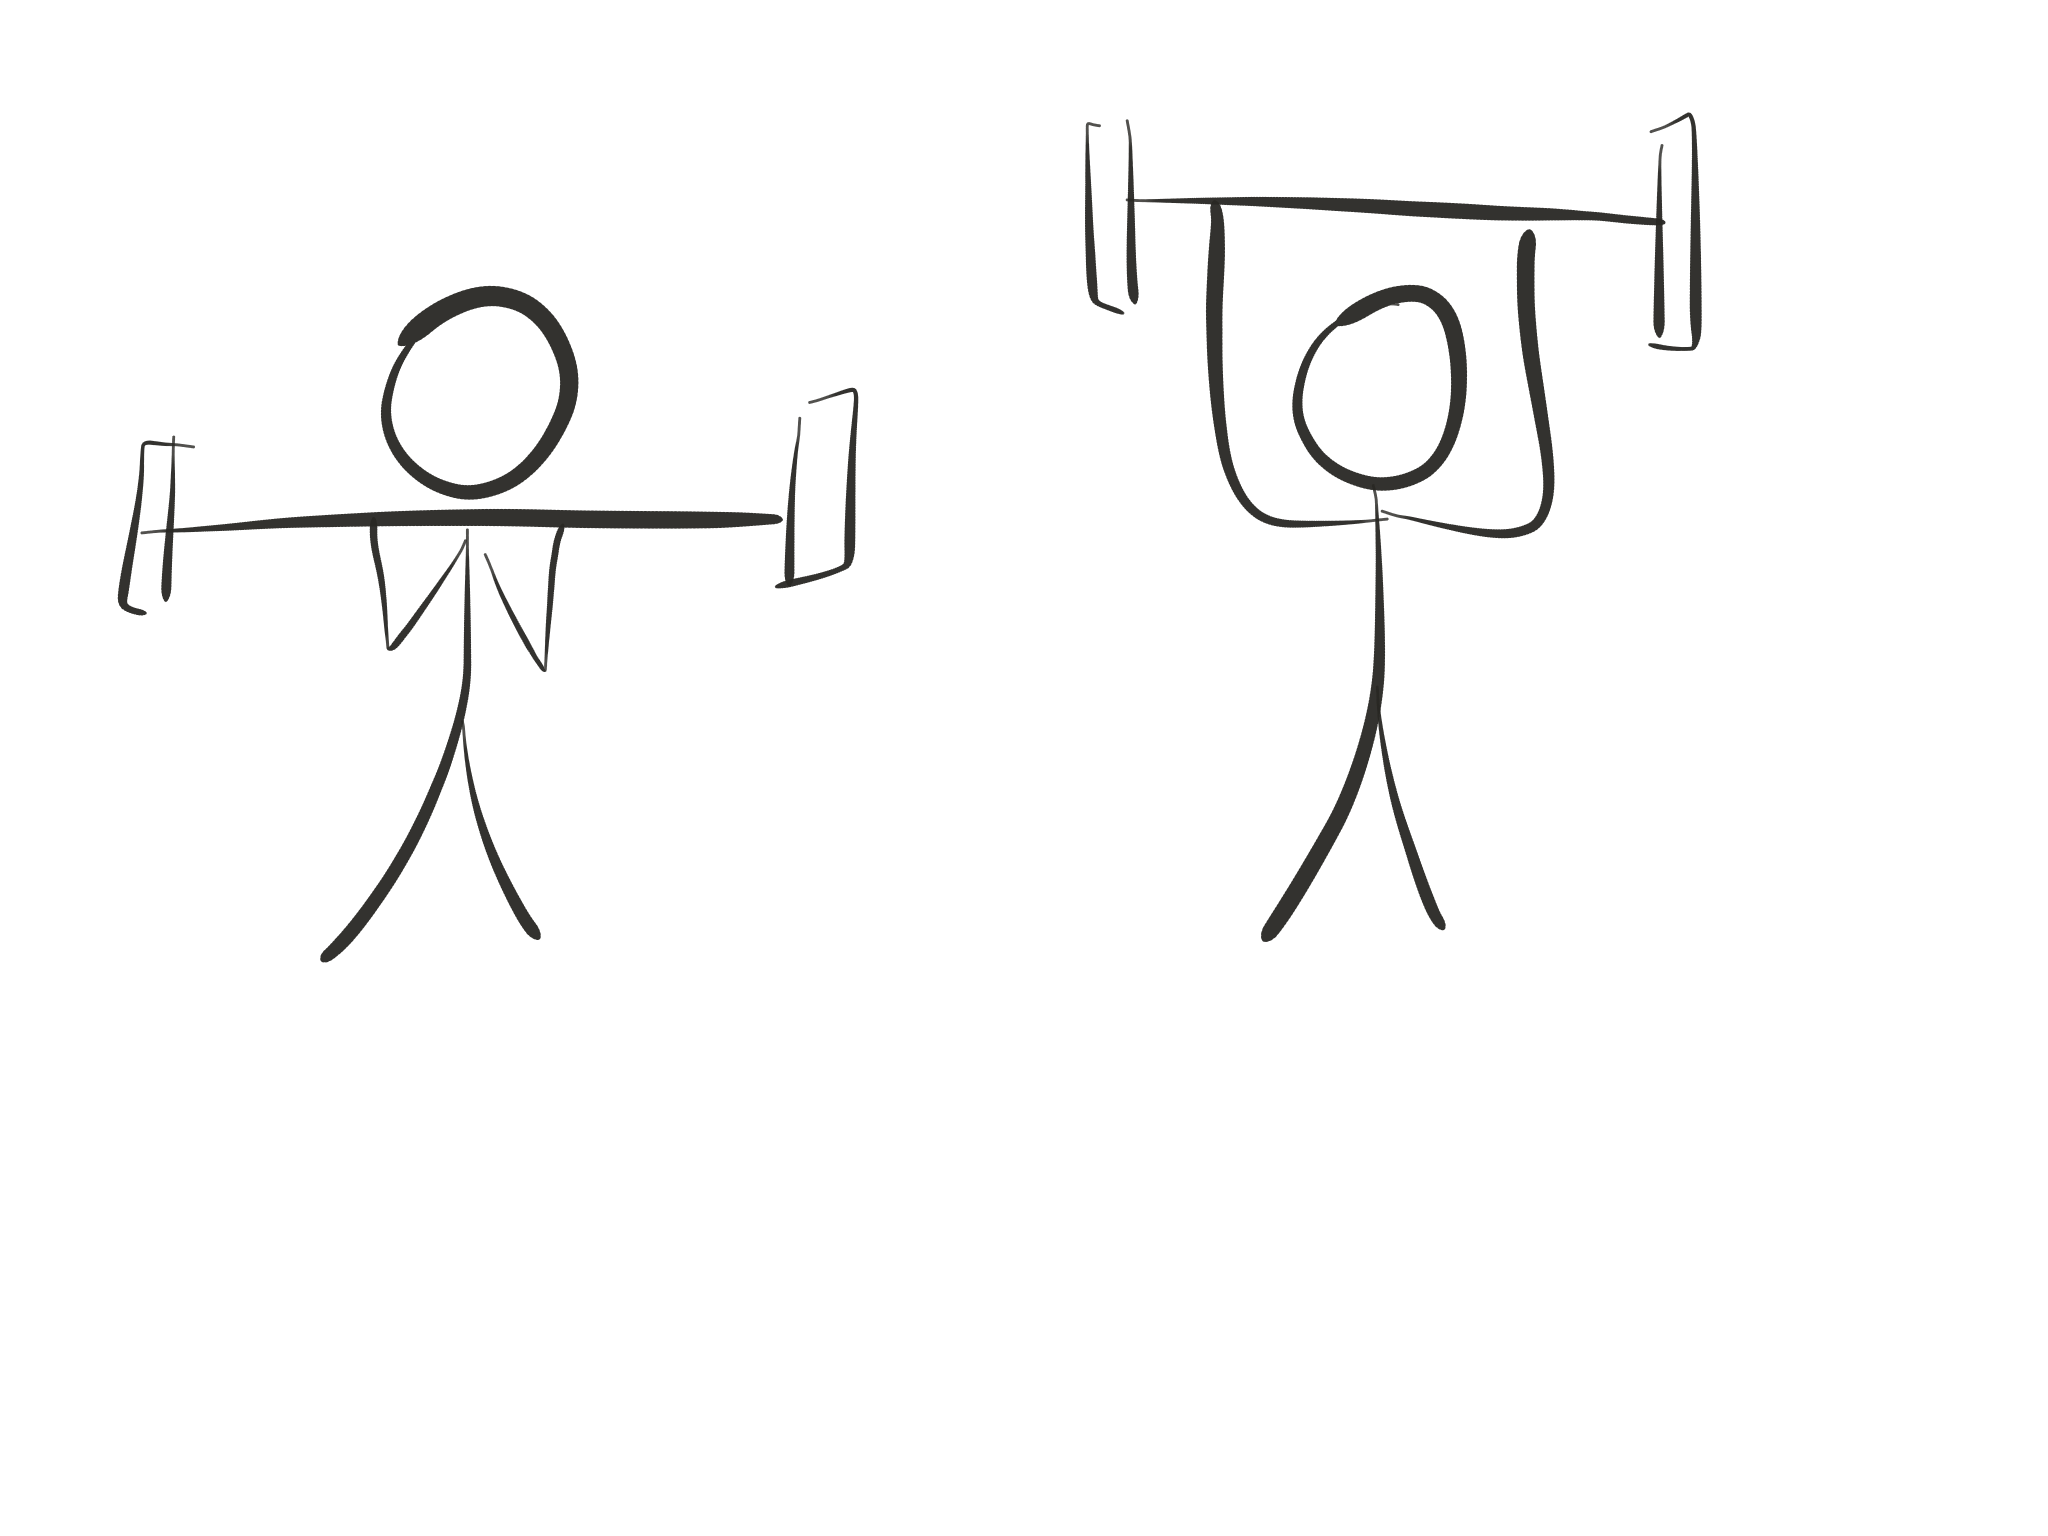 Stick figure diagram, shoulder press